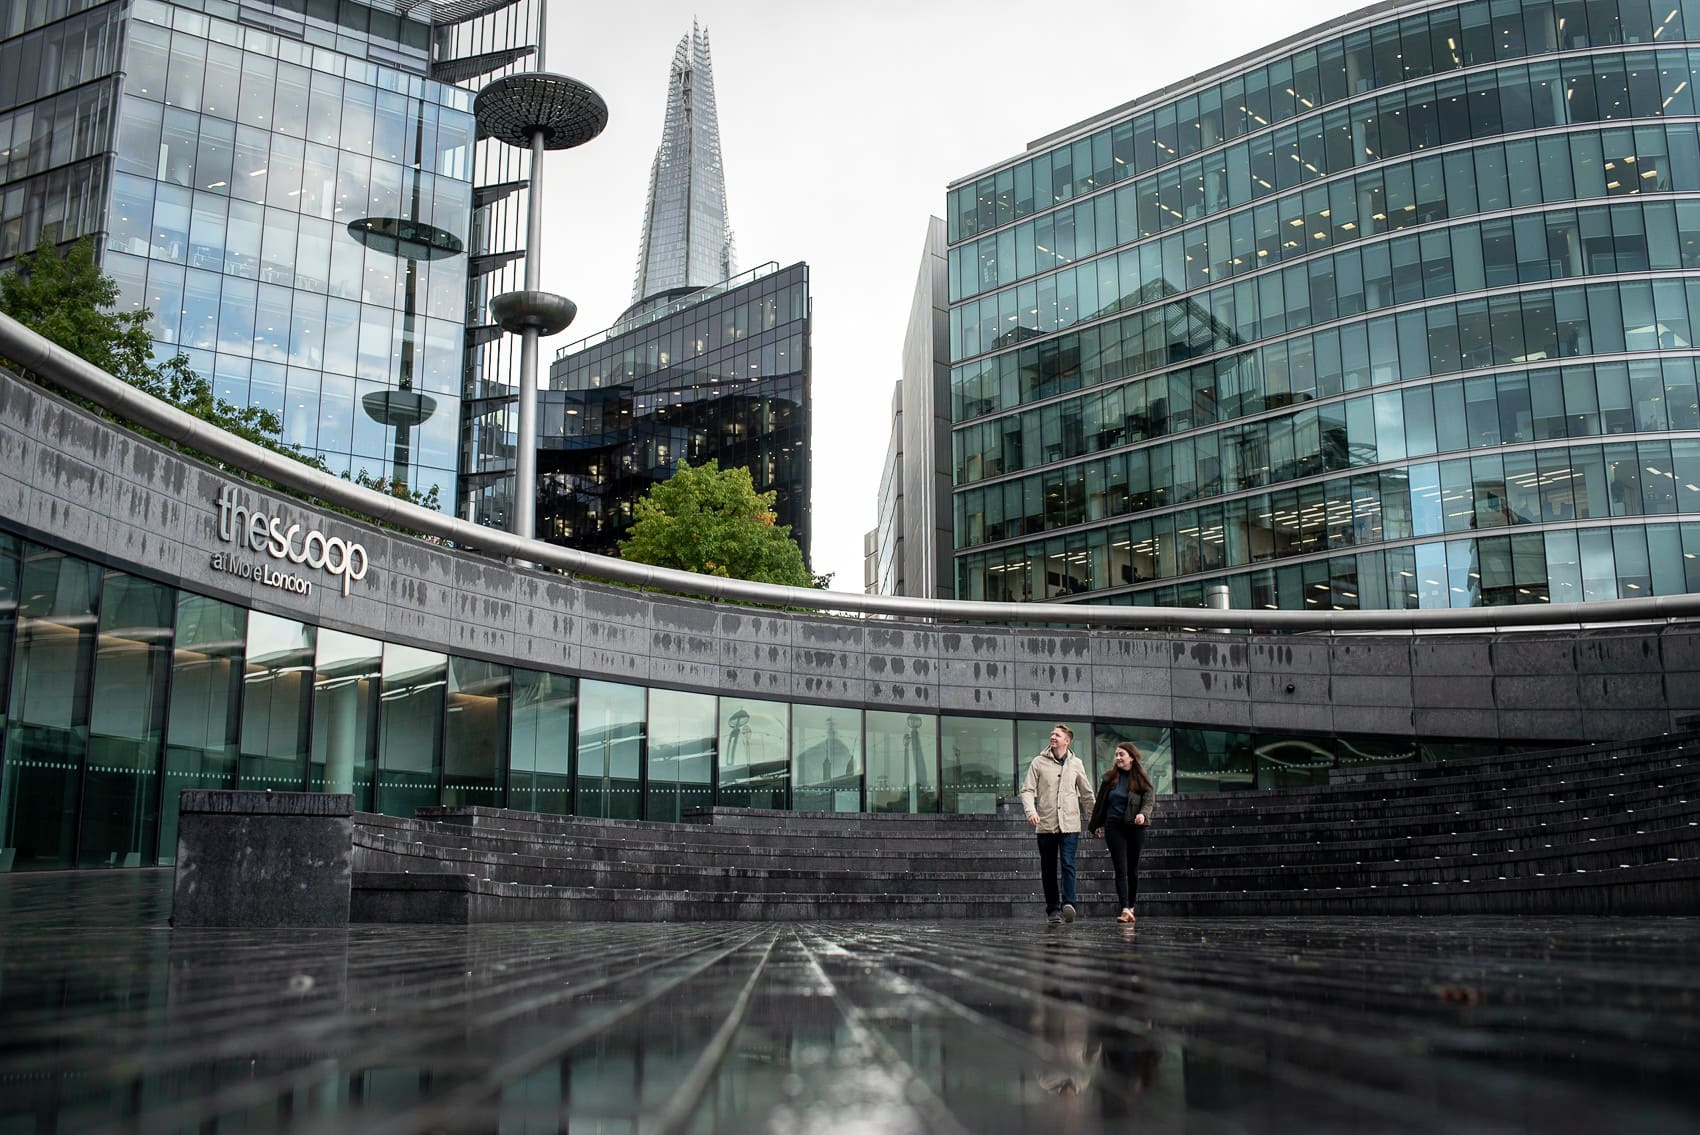 Couple walking on a rainy London day outside the Scoop and the Shard